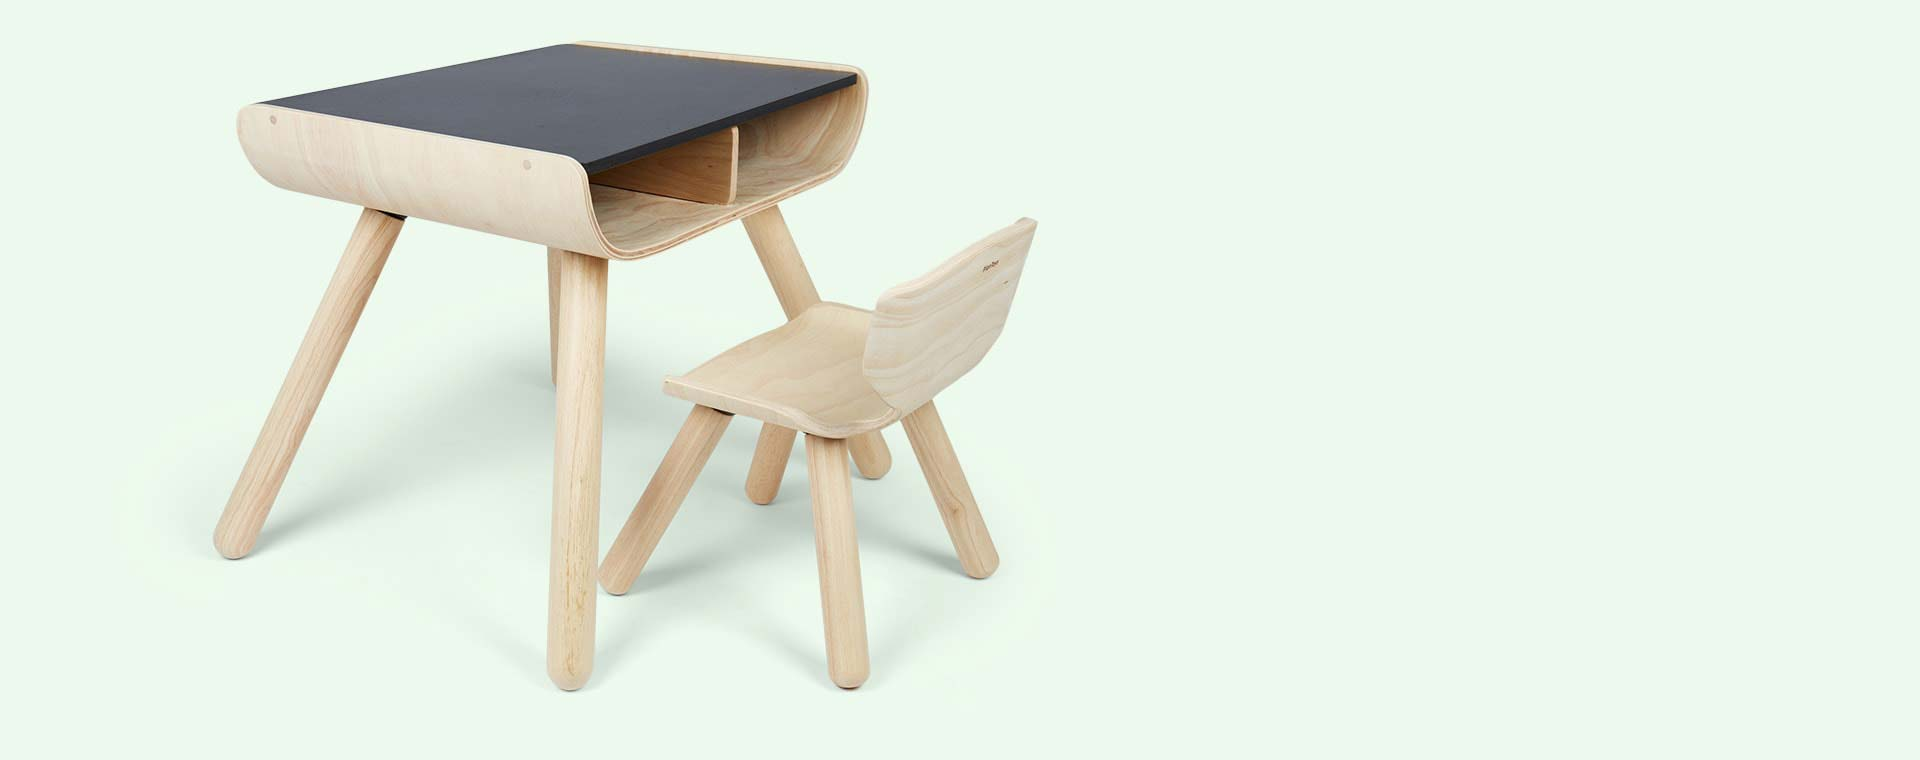 Black Plan Toys Table Chair